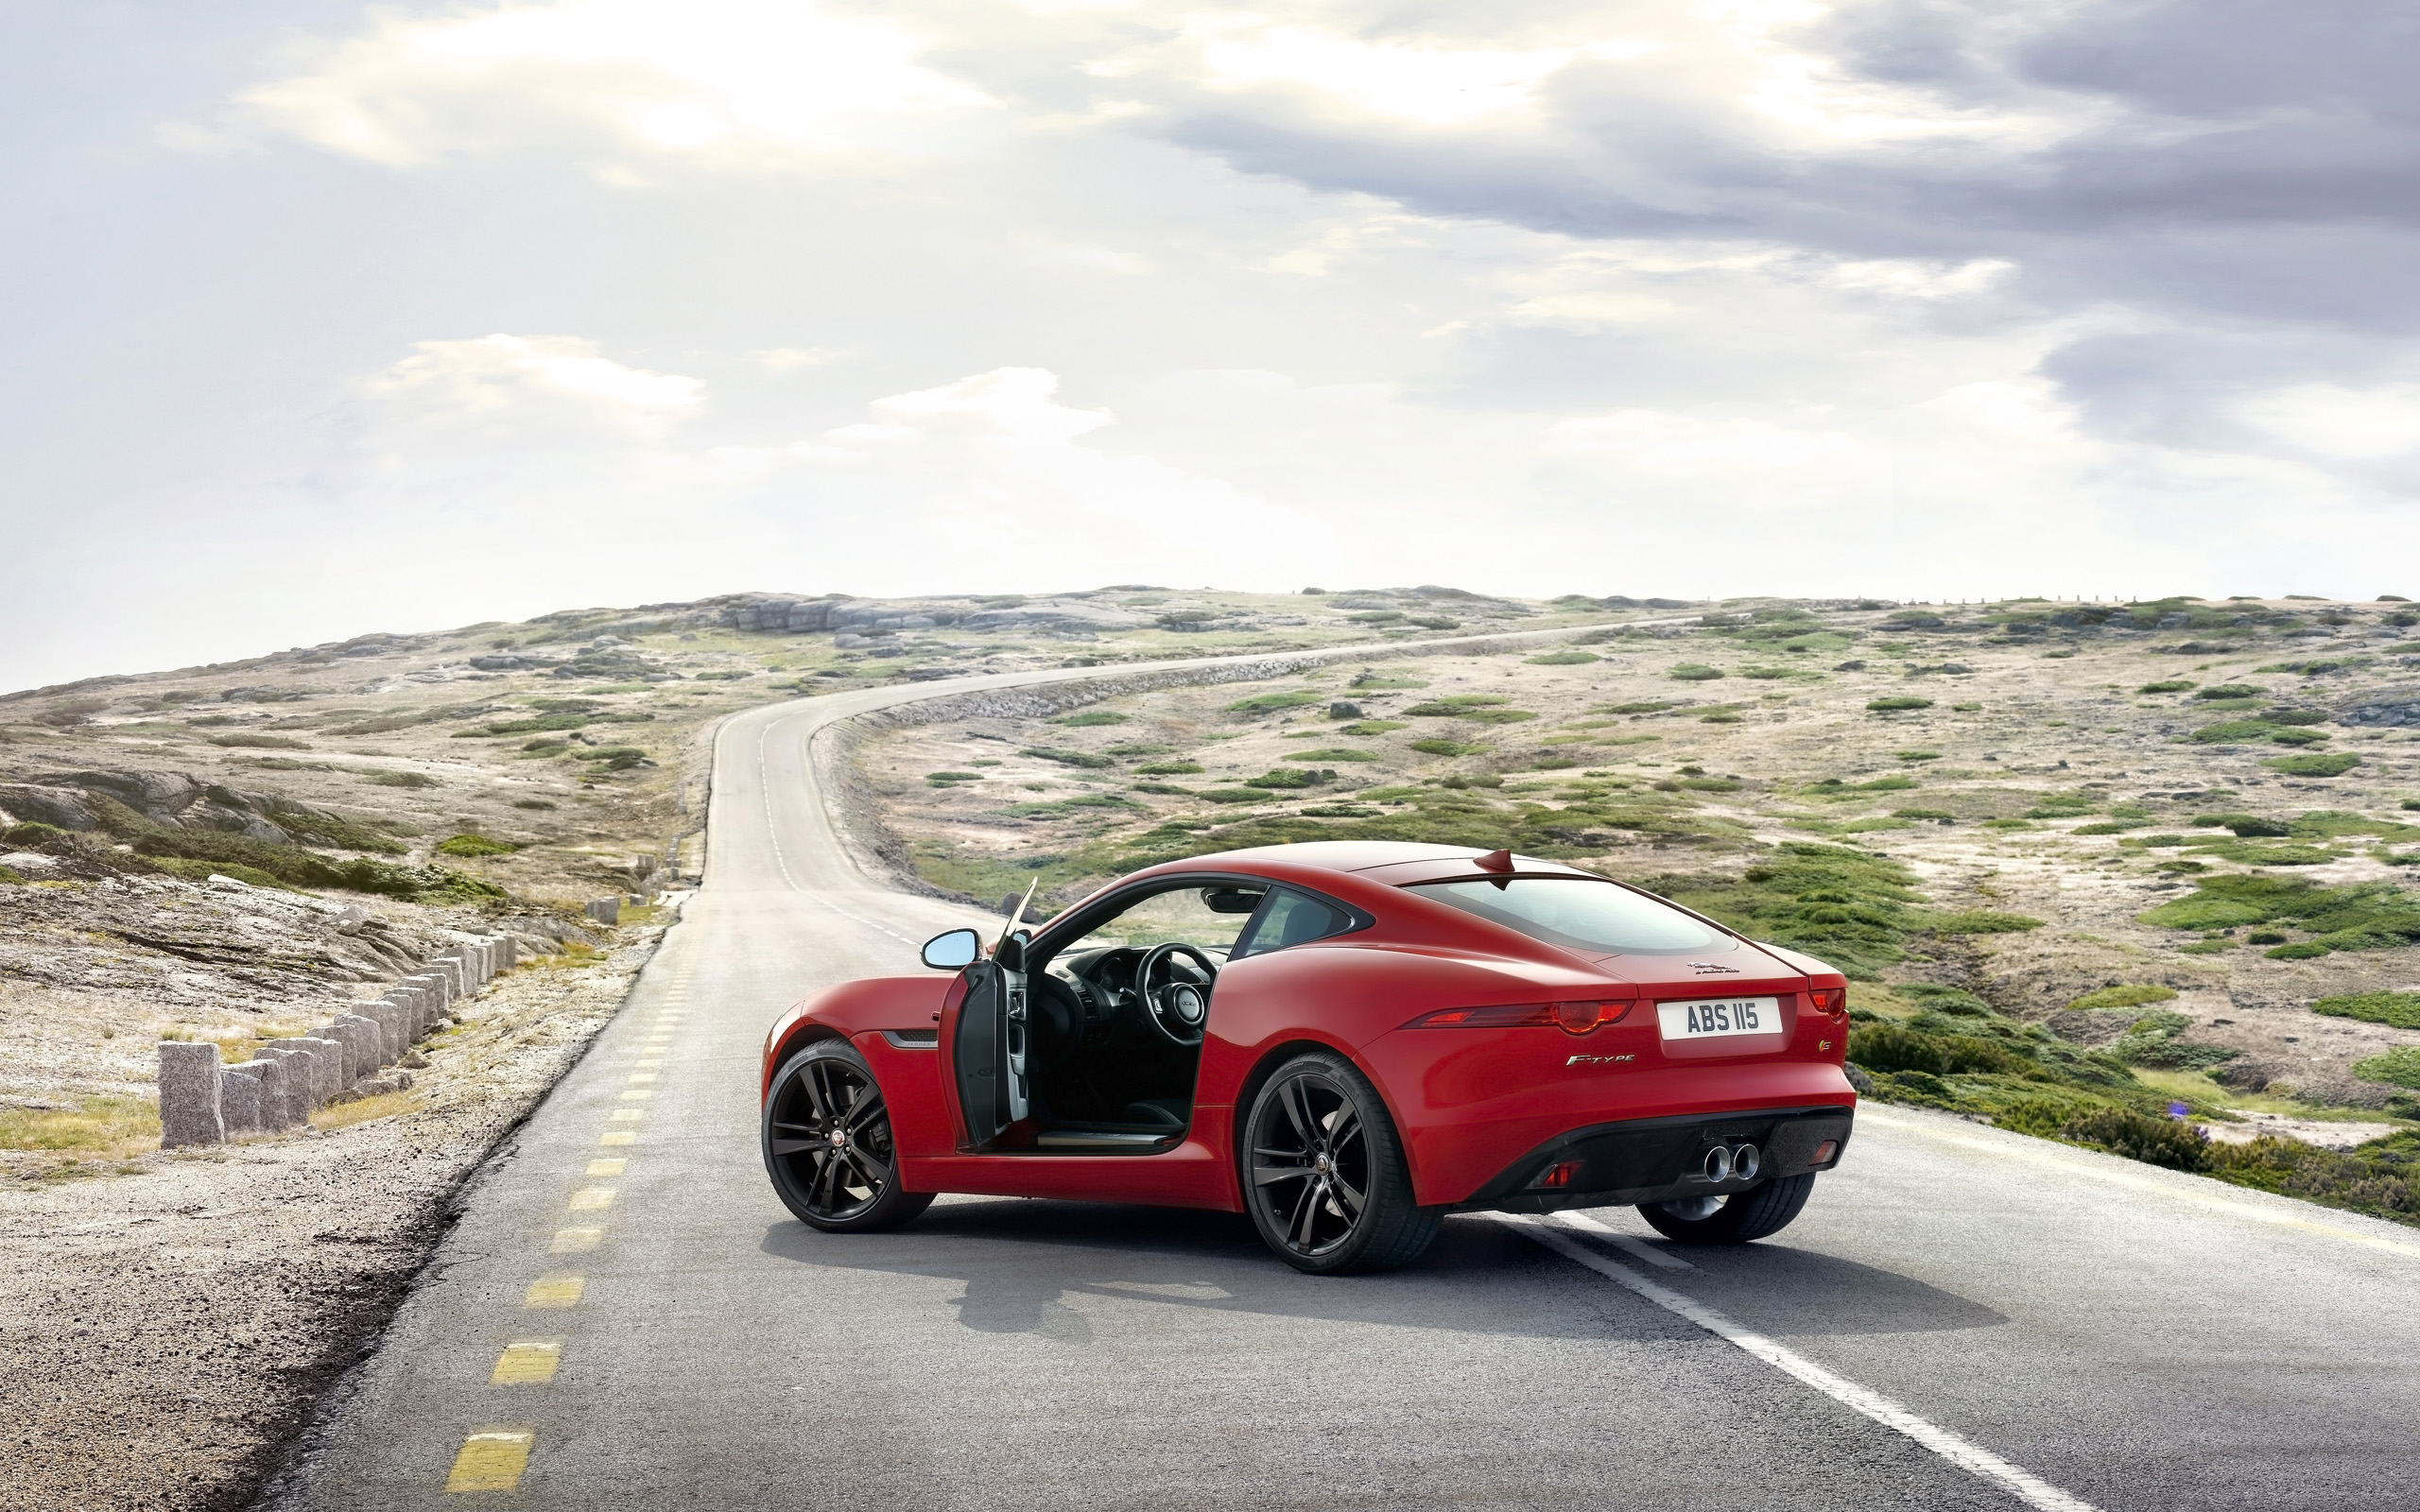 jaguar f type r coup gallery more jaguar cars awesome jaguar. Cars Review. Best American Auto & Cars Review